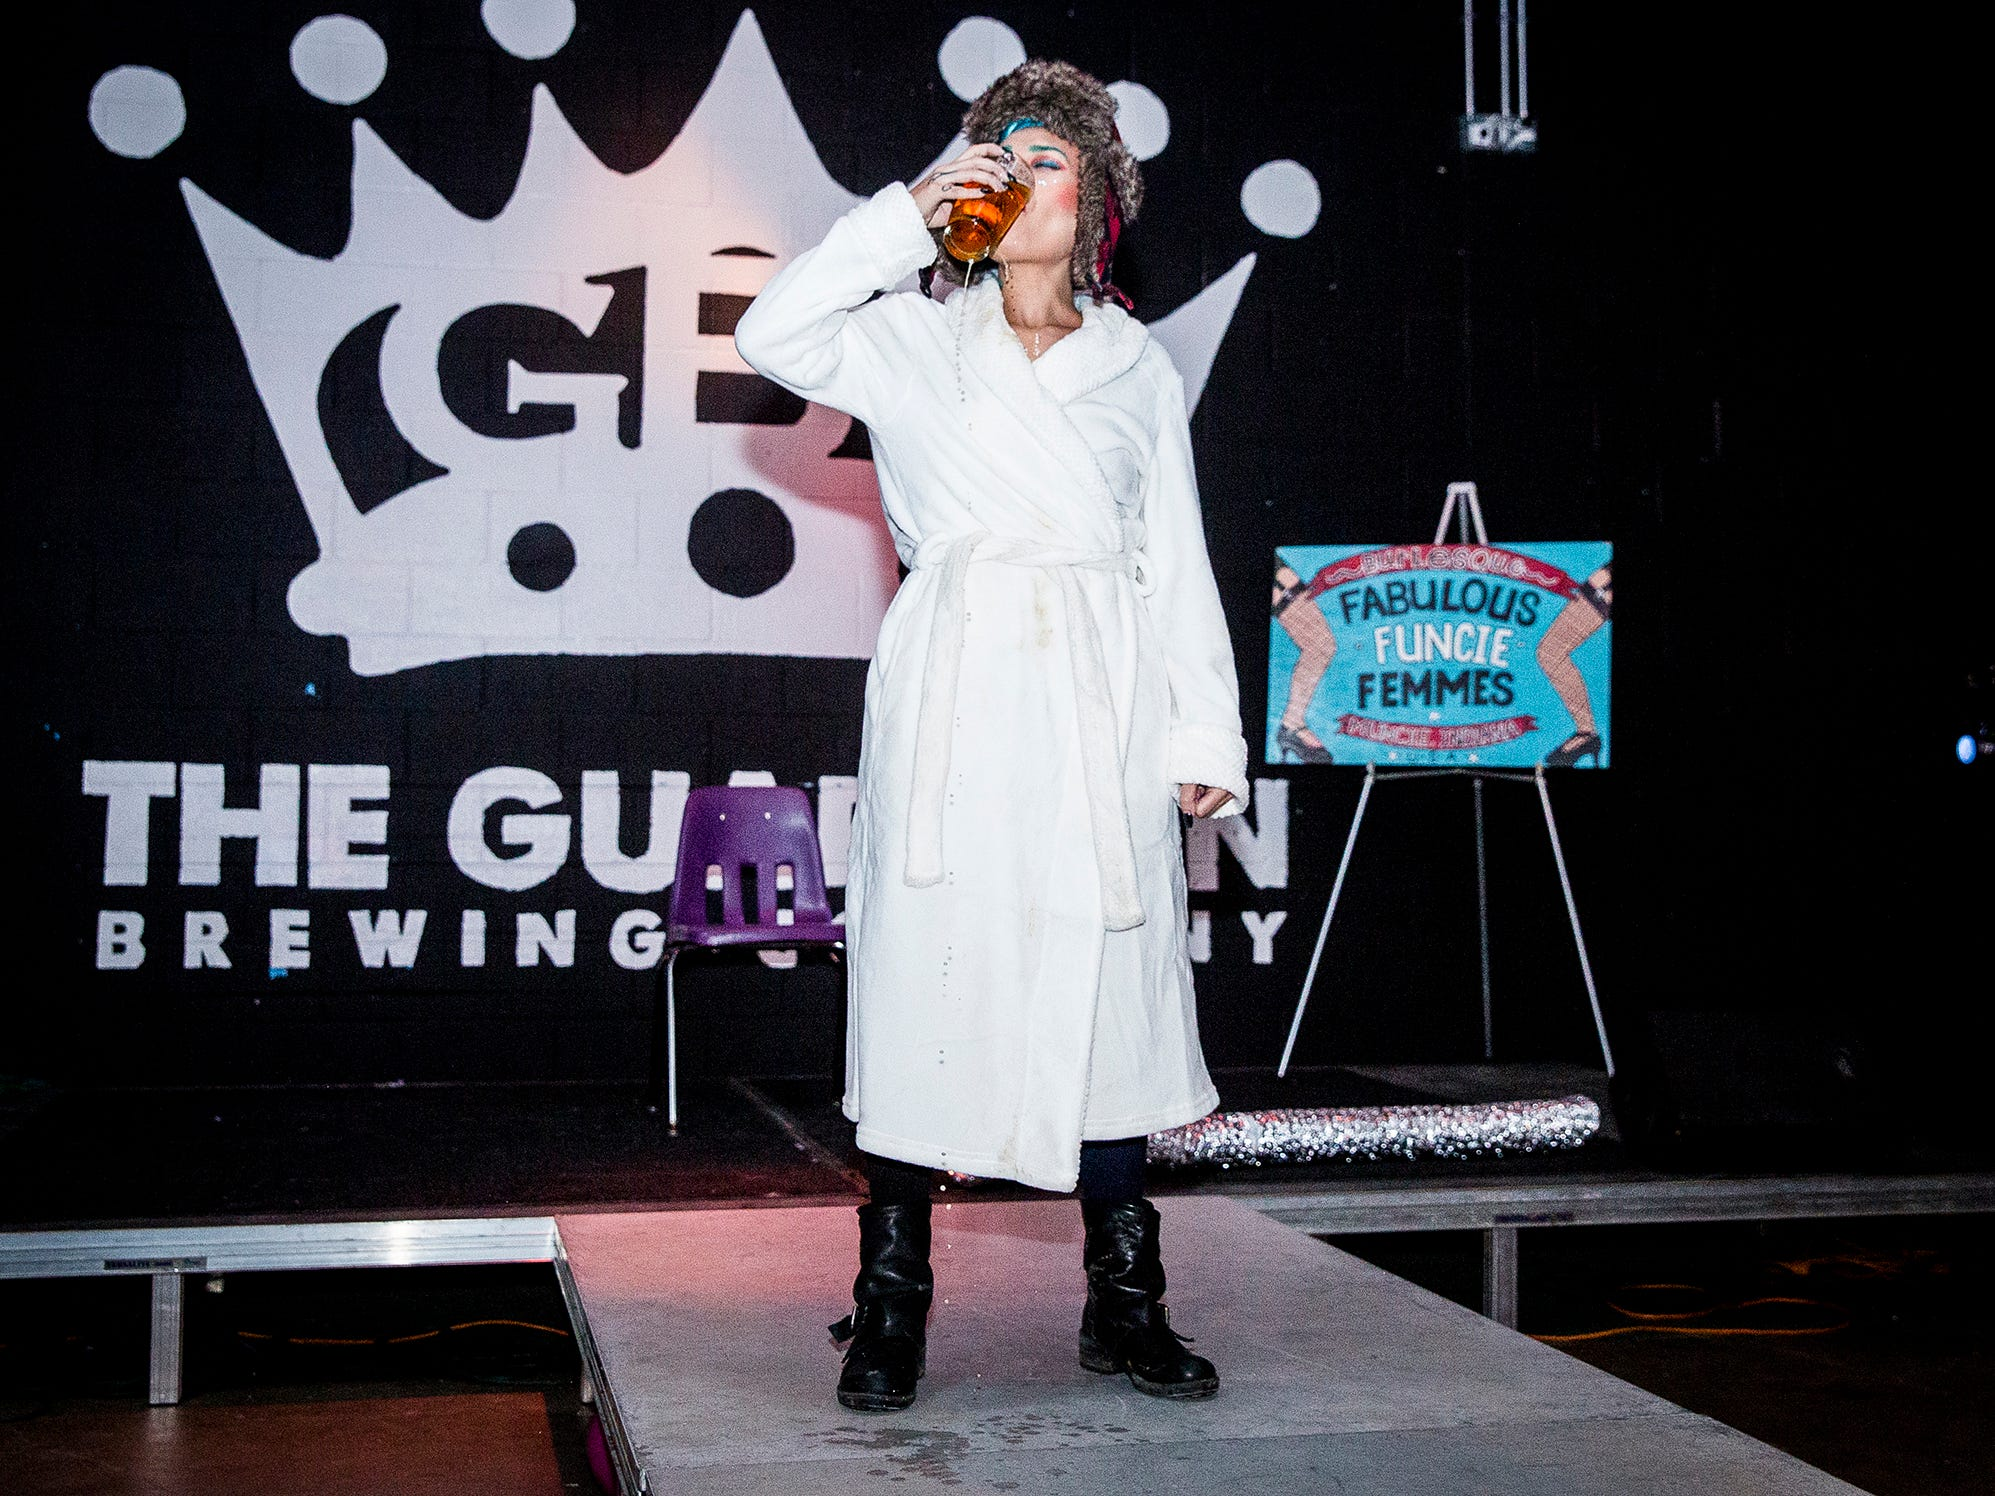 Greta Glee performs a Christmas Vacation themed burlesque at the Mark III Taproom.